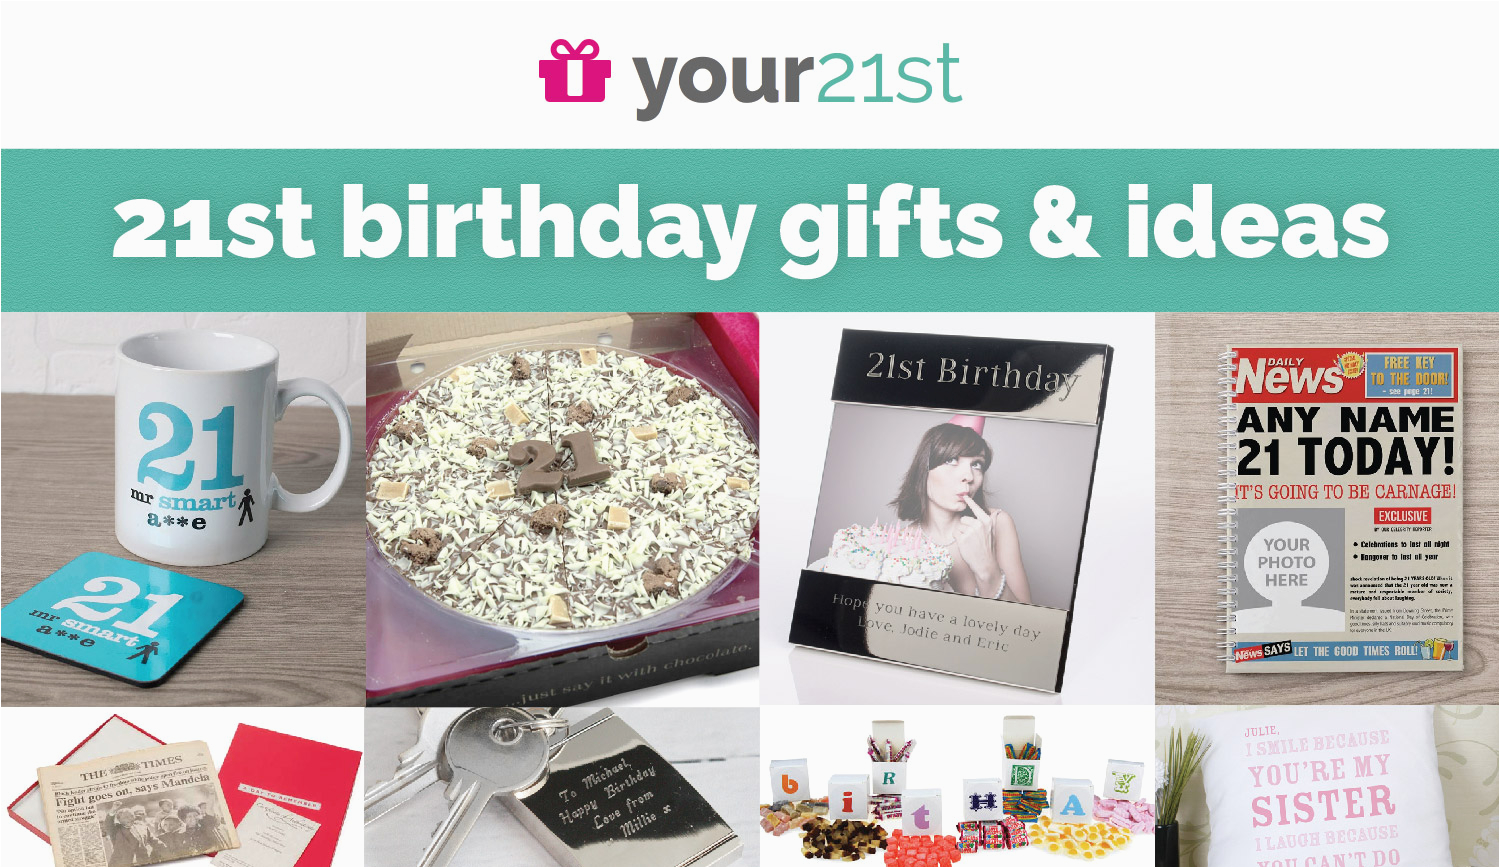 21st Birthday Gifts for Him Ideas 21st Birthday Gifts 21st Birthday Party Ideas Your 21st